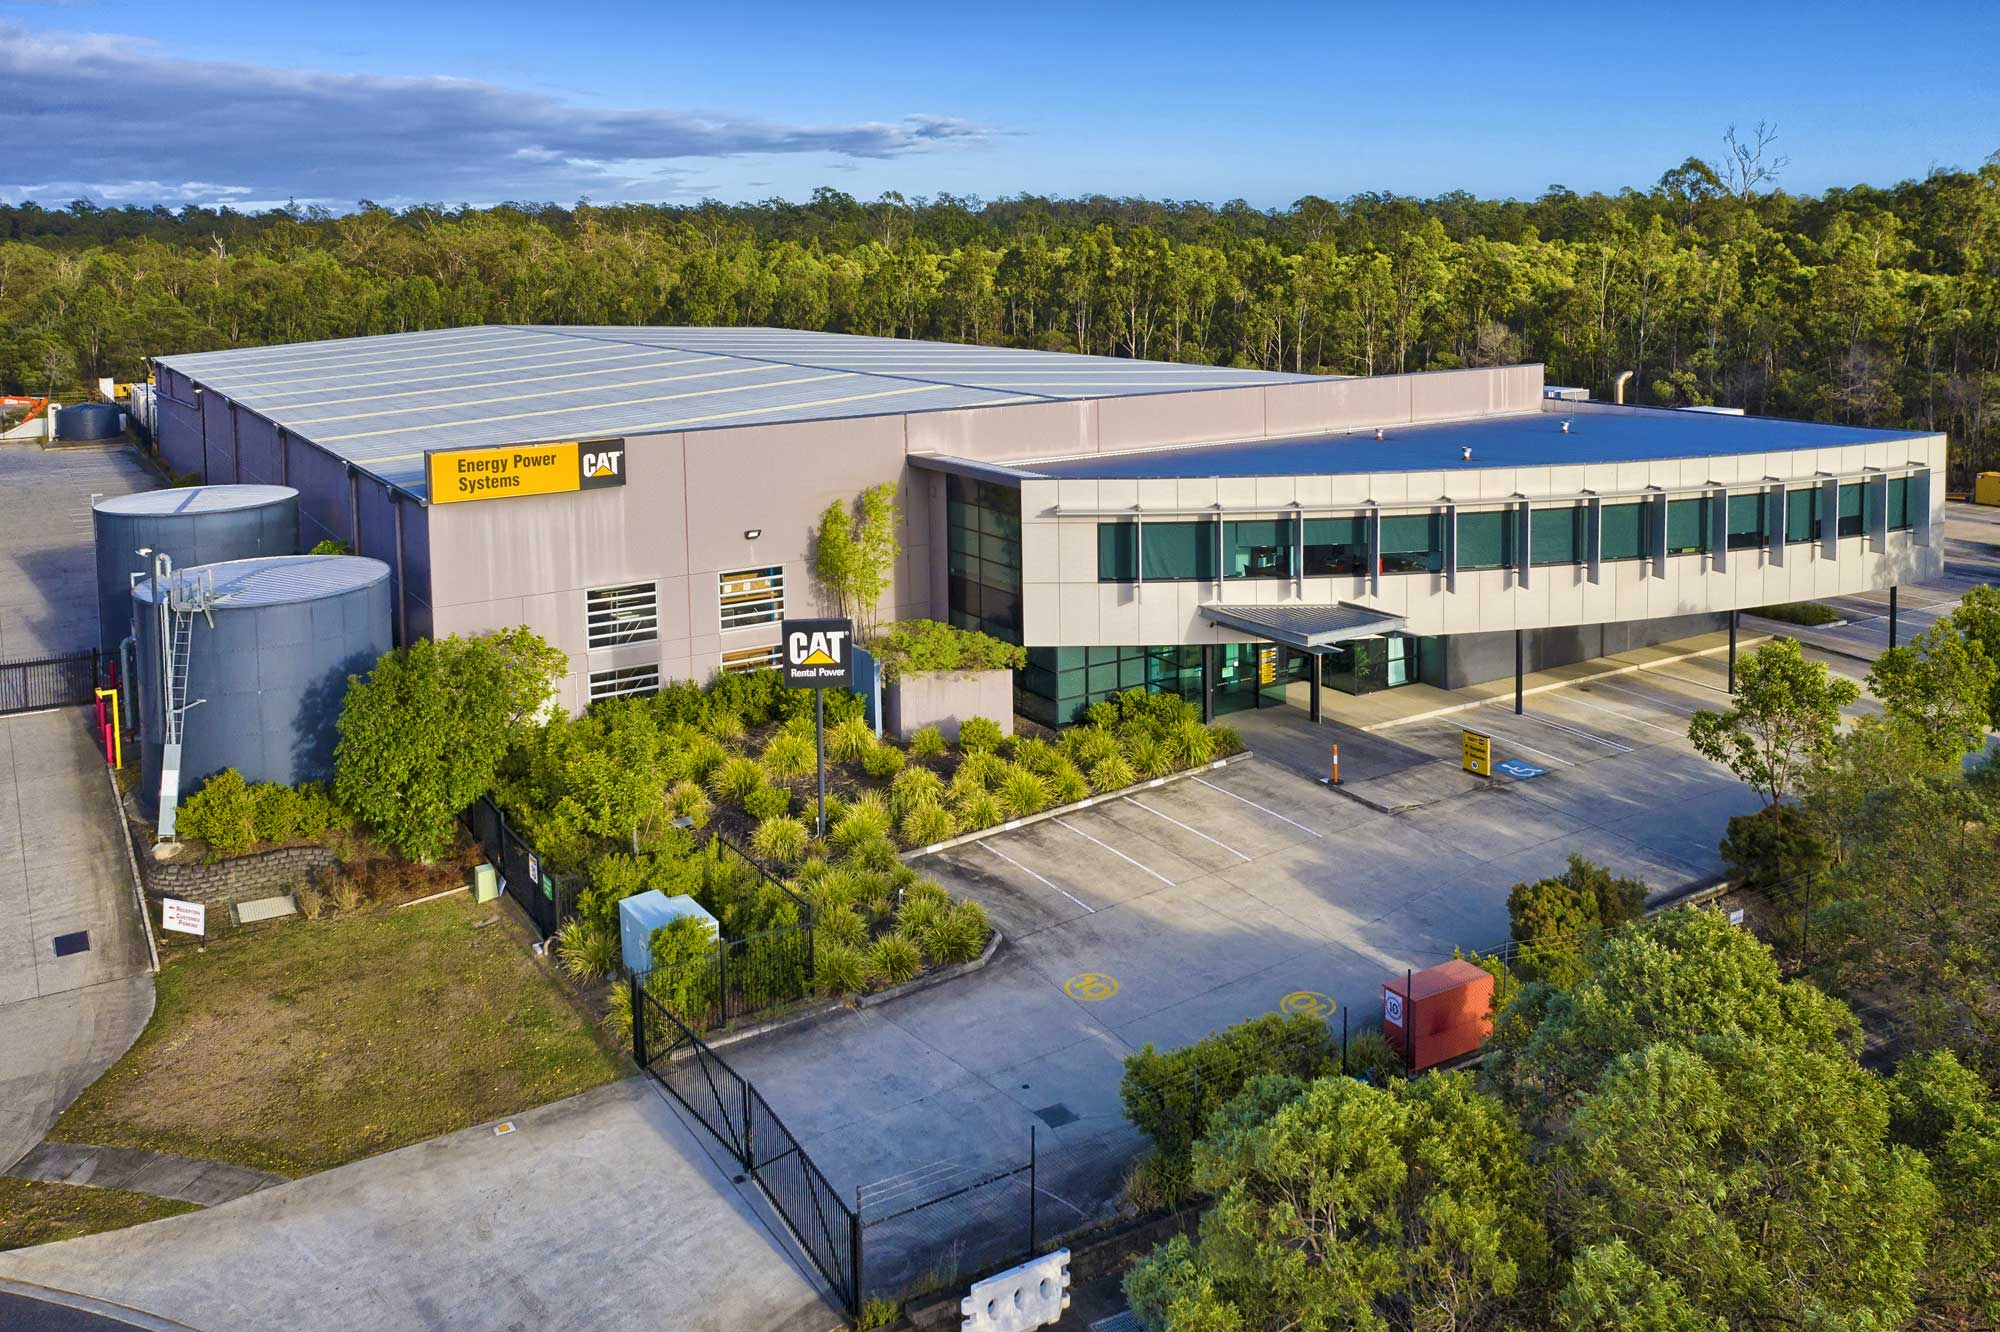 Drone Photography Brisbane - Large format building at Larapinta